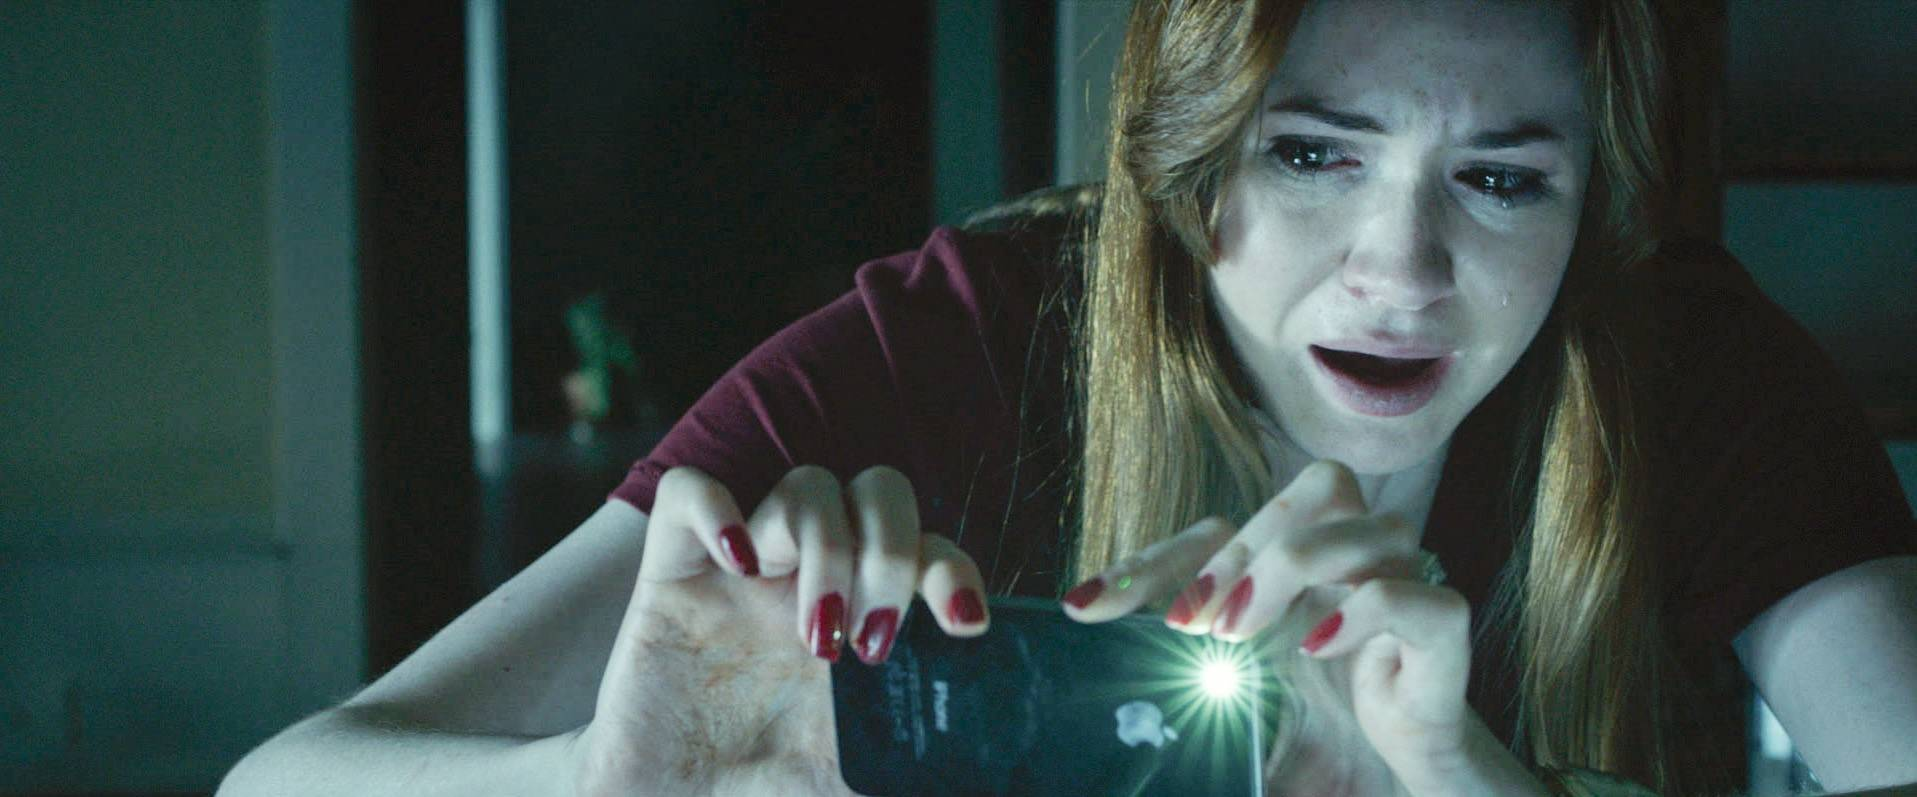 "Kaylie (Karen Gillan) freaks out while investigating a haunted mirror in the supernatural thriller ""Oculus."""